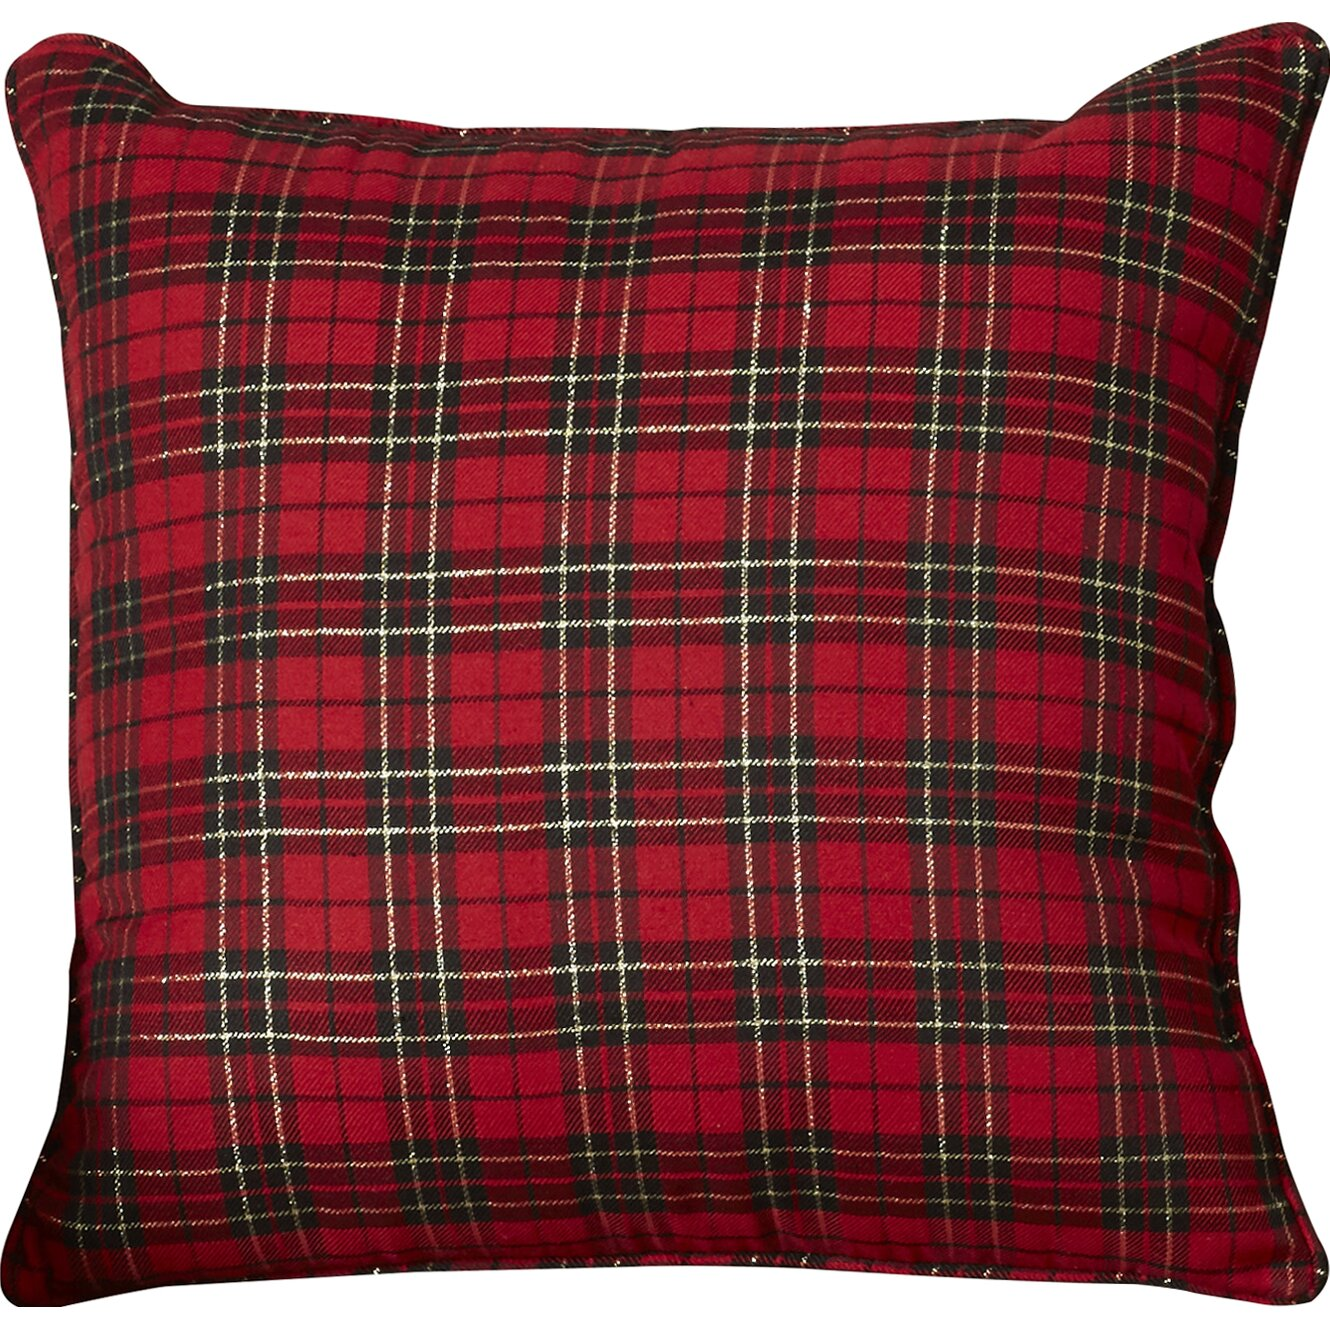 Loon Peak Greeley Holiday Plaid Throw Pillow & Reviews Wayfair